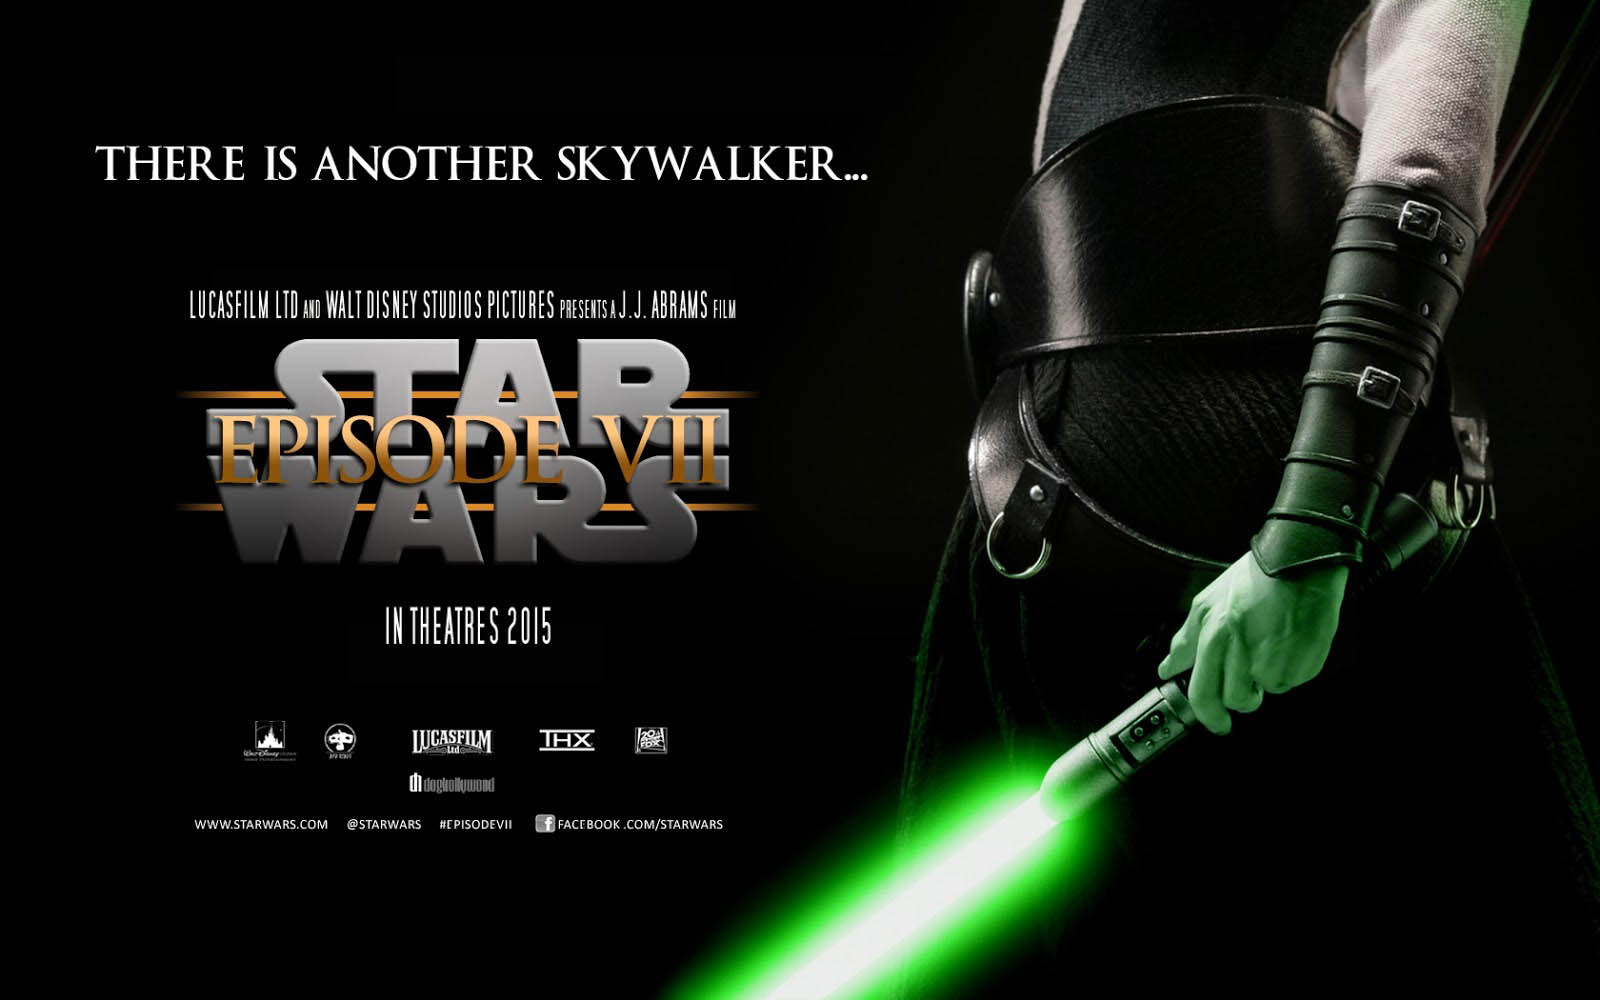 Star Wars The Force Awakens Movie Poster   Wallpaper 5220 on 1600x1000